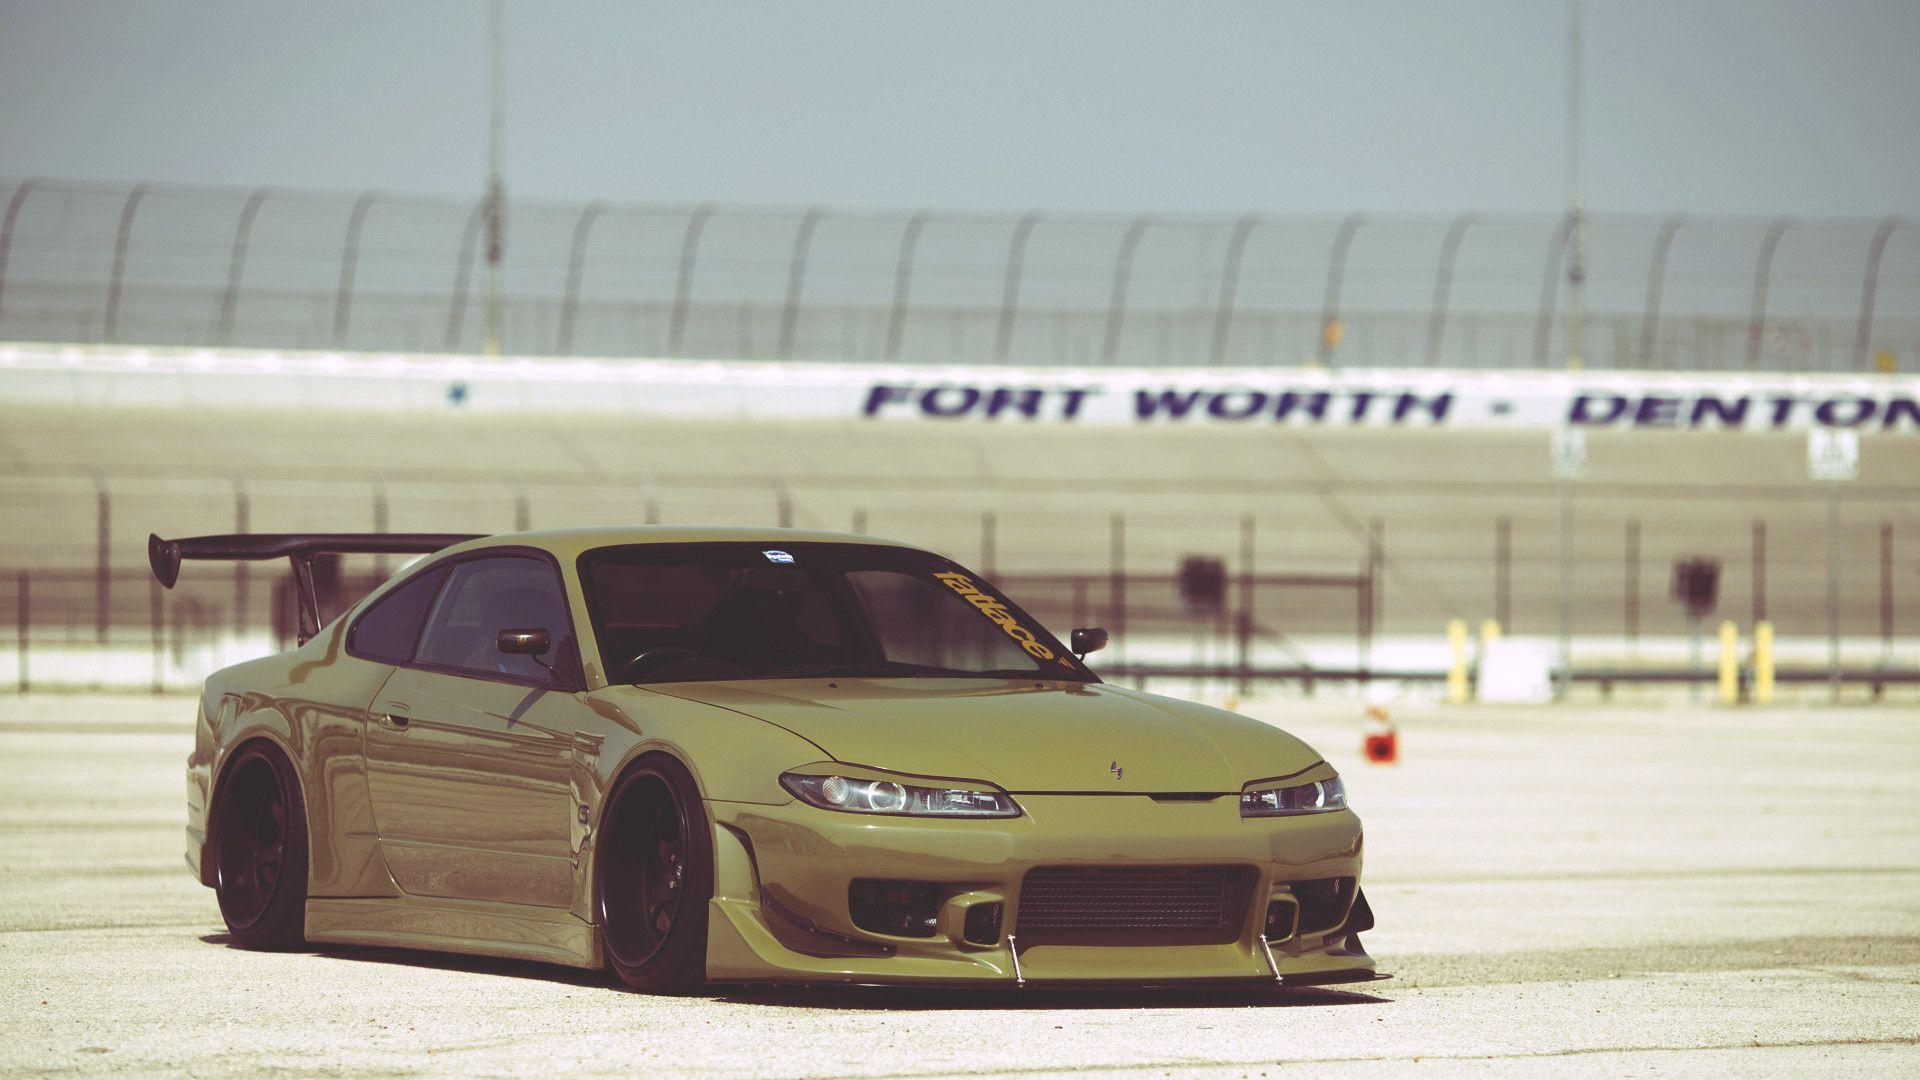 s15 wallpaper - photo #10